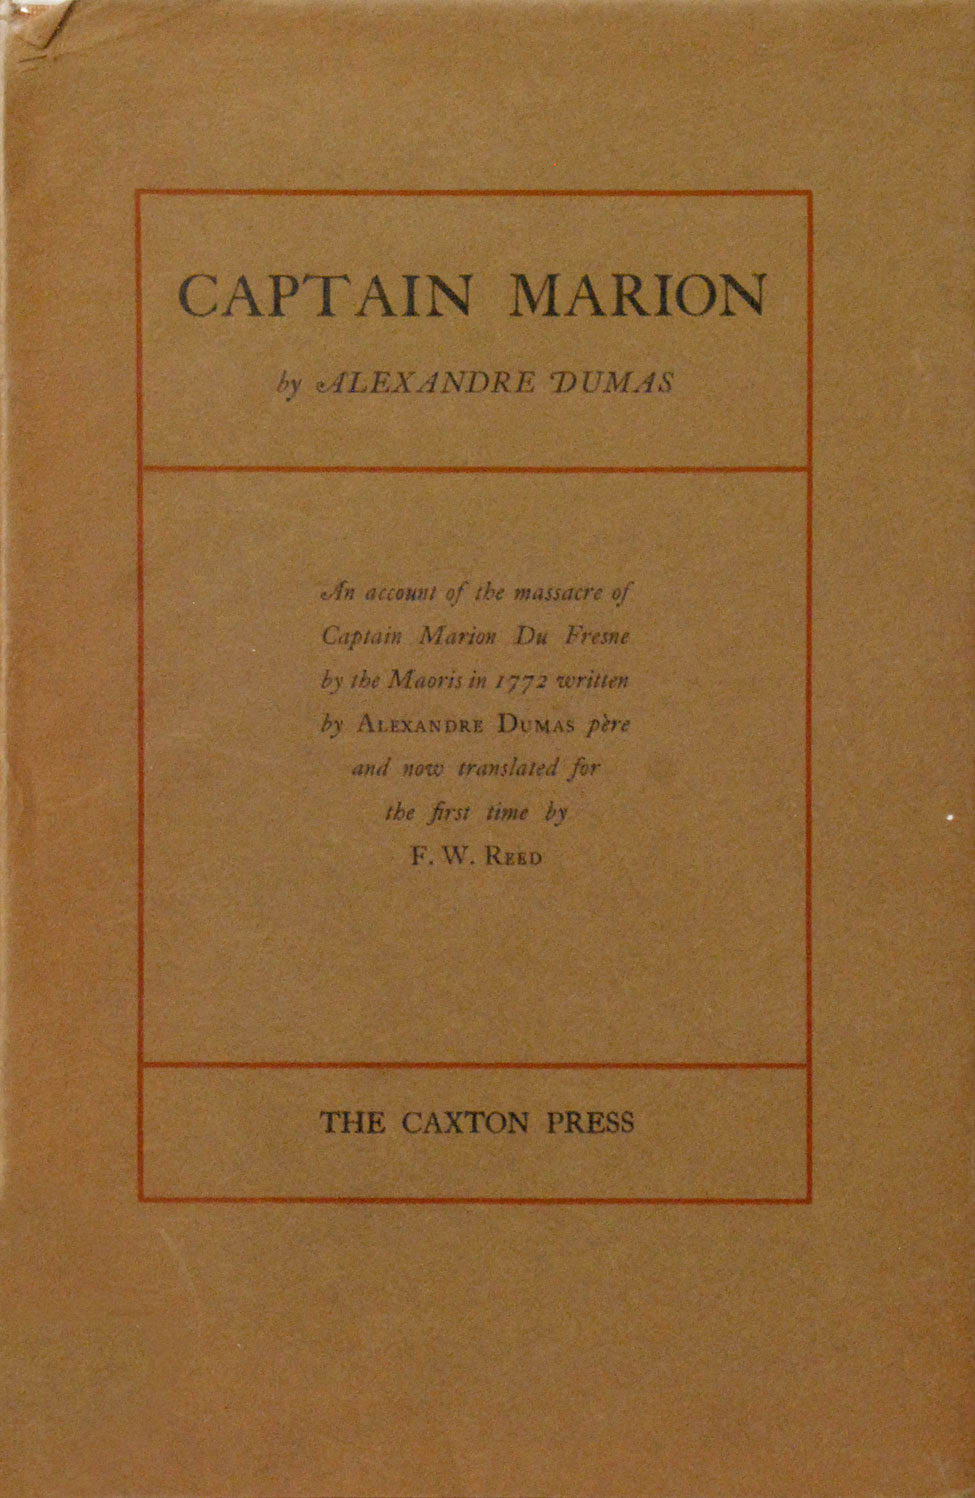 F. W. Reed (trans.). Captain Marion by Alexandre Dumas. <i>Christchurch: The Caxton Press, 1949.</i>